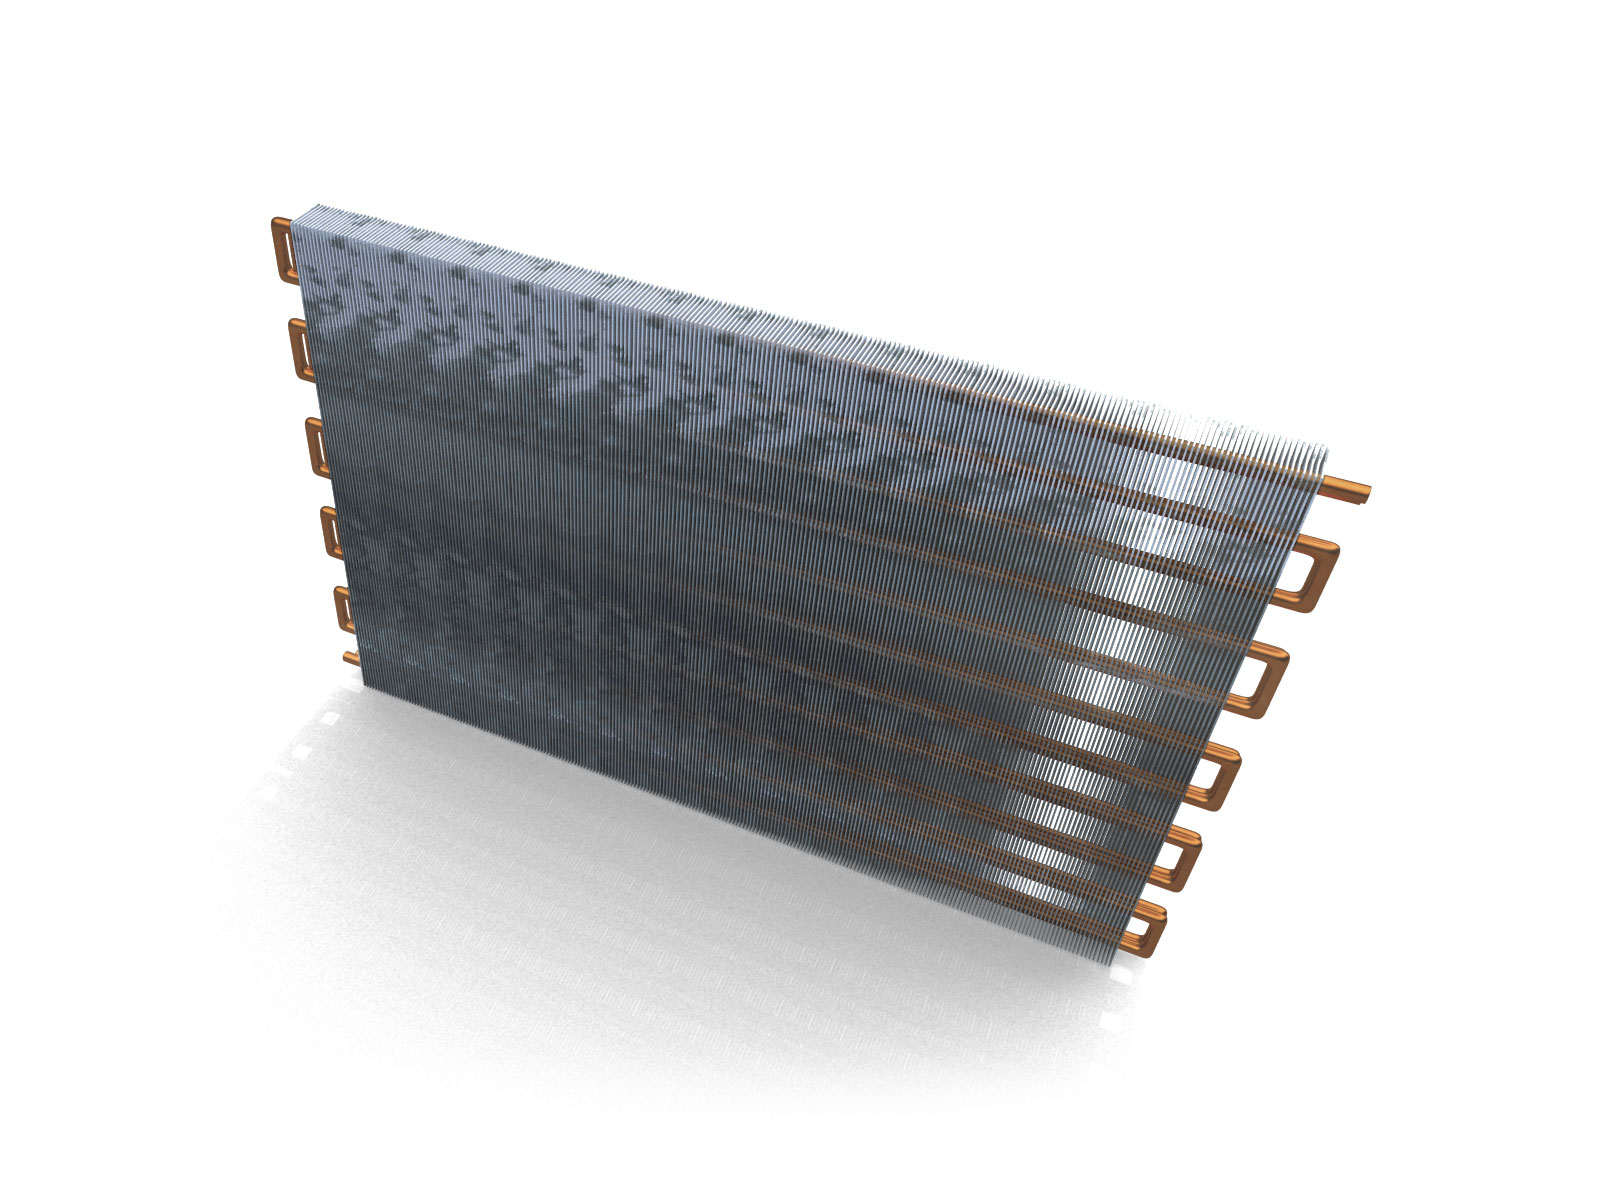 3D technical product model illustration of air conditioning coil top view